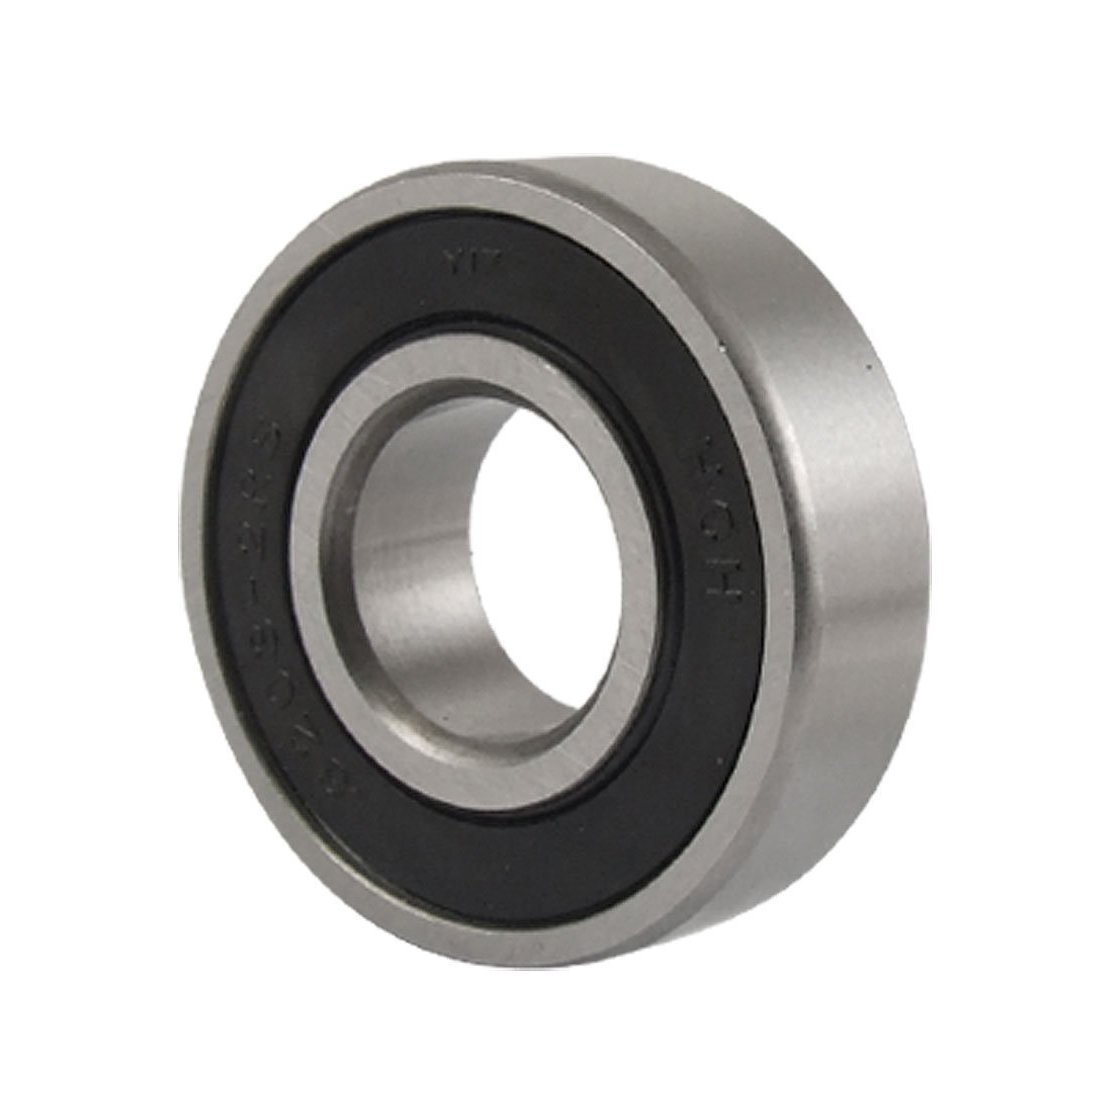 Sealed Ball Bearing - TOOGOO(R) 17x40x12mm 6203-2RS Double Side Sealed Ball Bearing